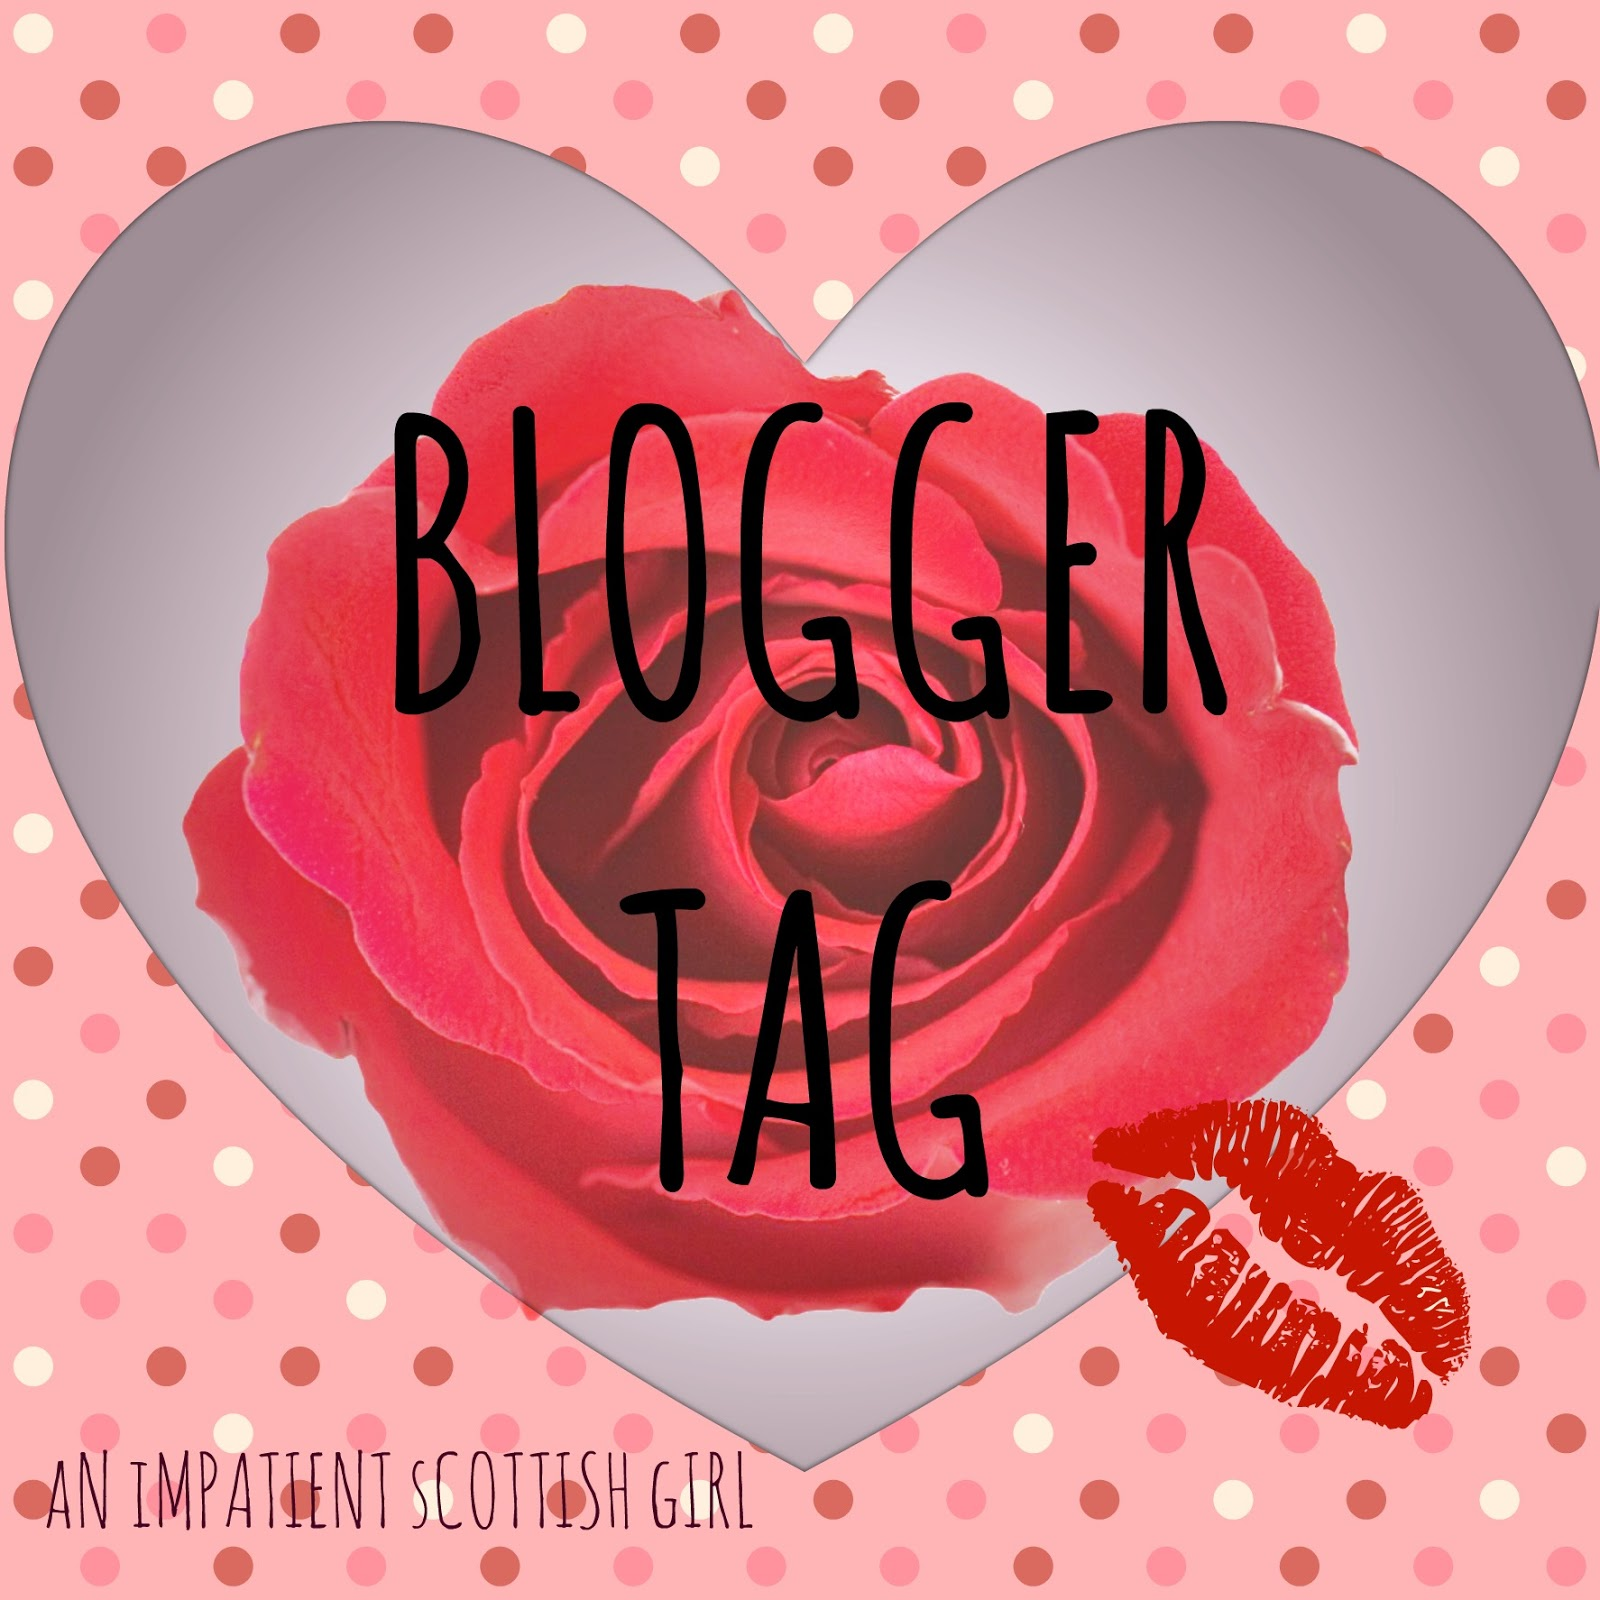 Blogger Tag - An Impatient Scottish Girl